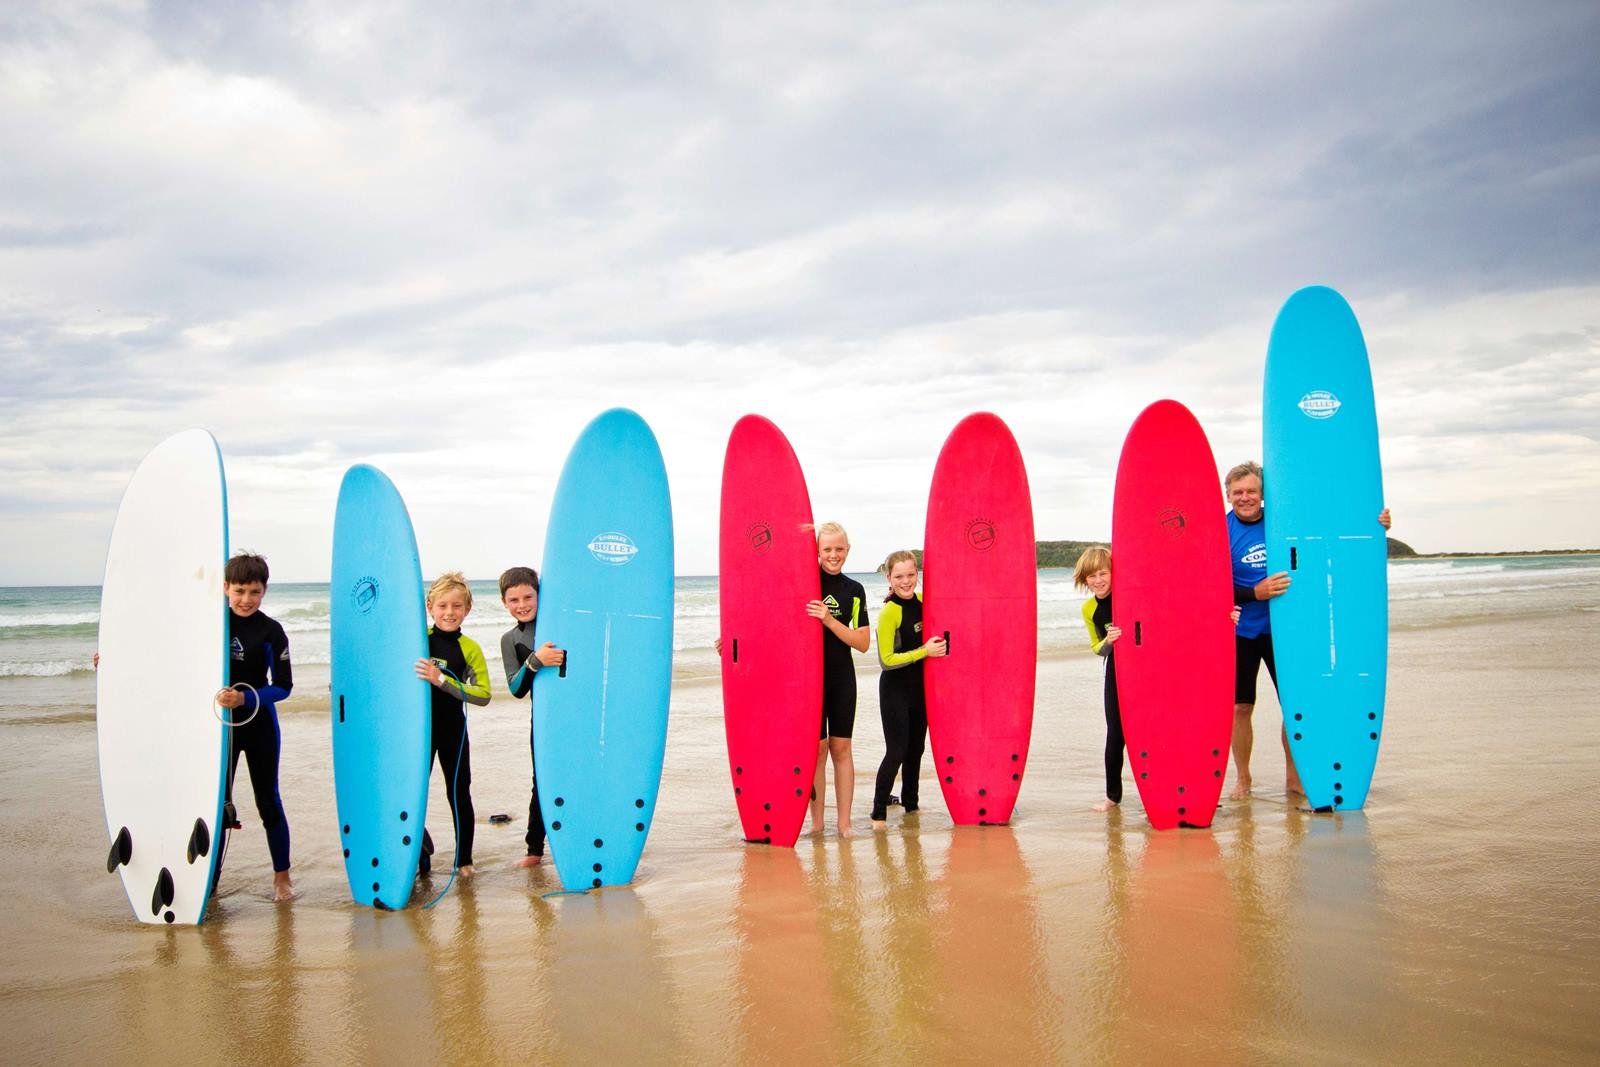 joijn a kids surfing program